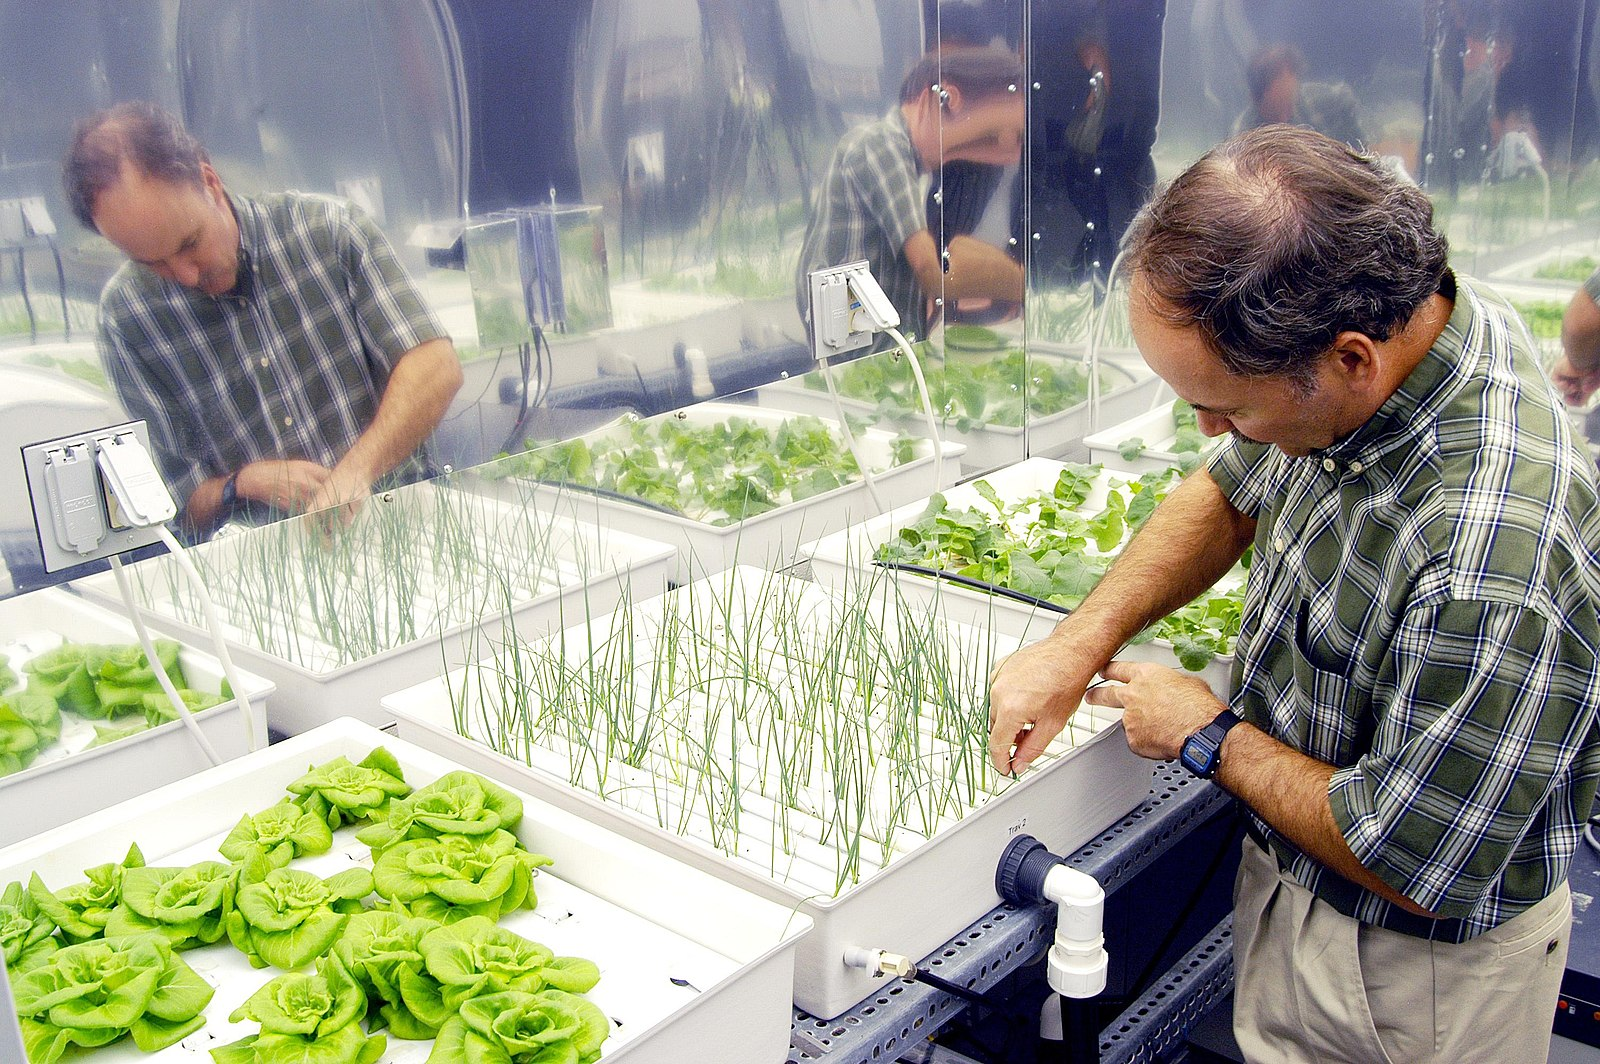 This photo shows a NASA researcher examining a hydroponic array, including several types of plants. The onions grow in a tray with long, thin openings from which emerge their grass-like leaves. Next to the onions are lettuces in a try appearing to have holes from which their larger leaves can emerge.